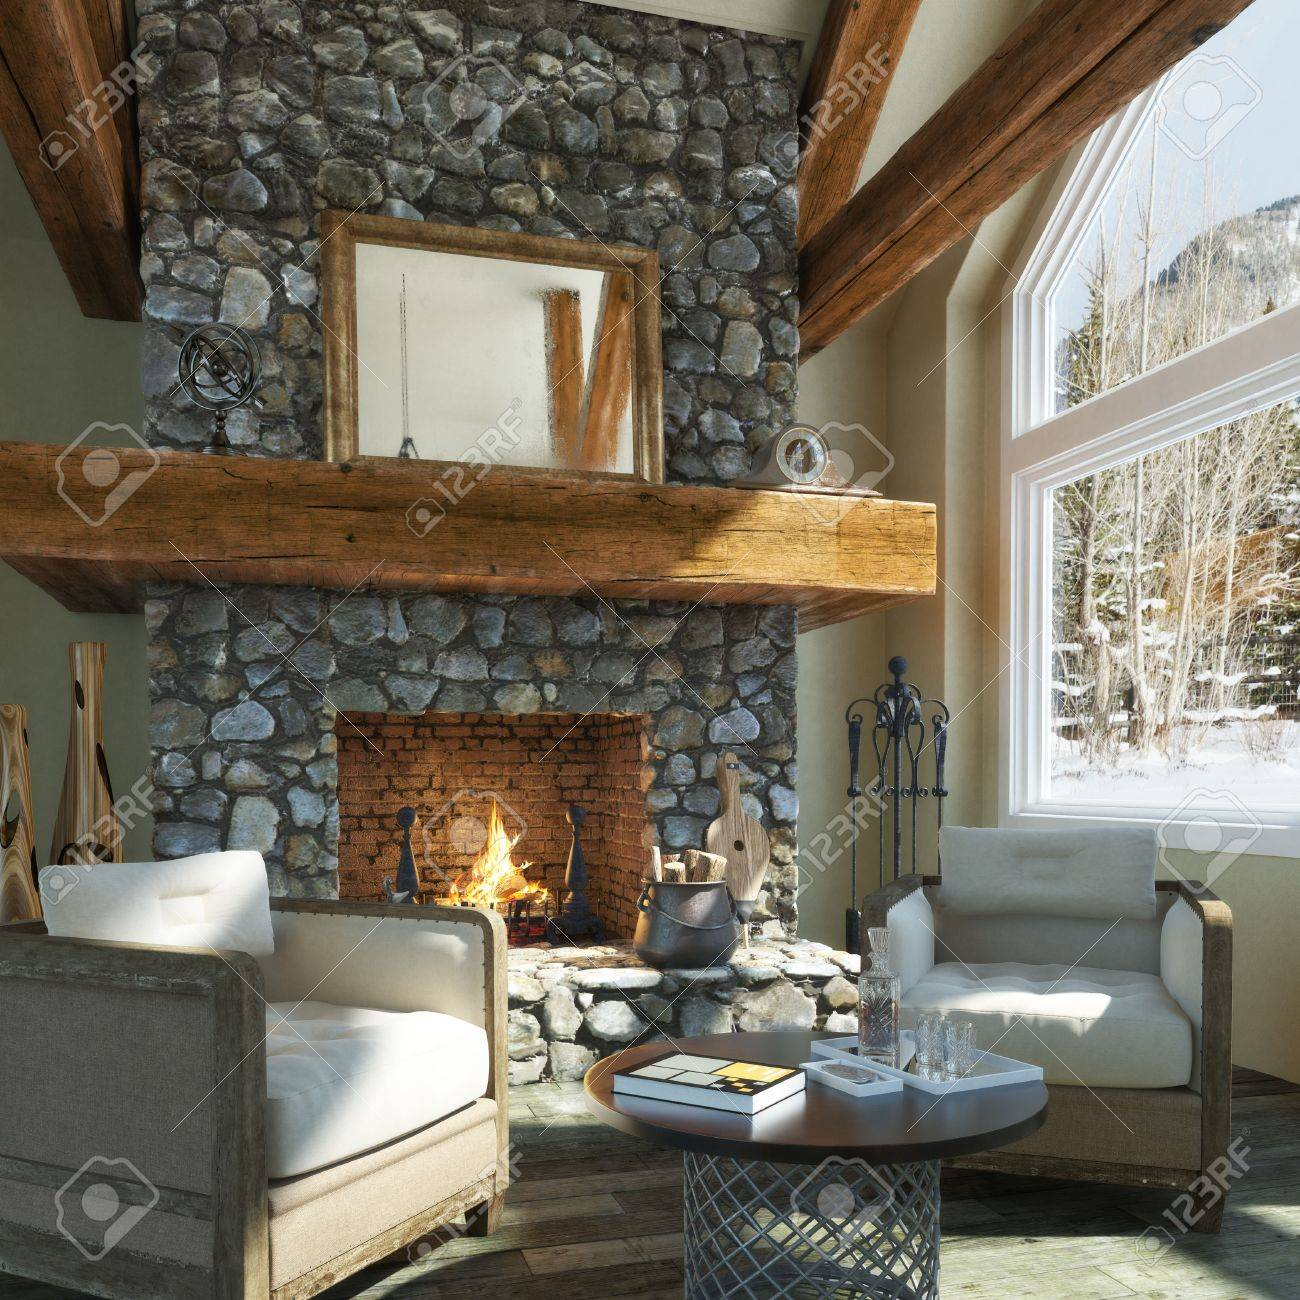 Luxurious open floor cabin interior design with roaring fireplace and winter scenic background. Photo realistic 3d rendering Standard-Bild - 60901526